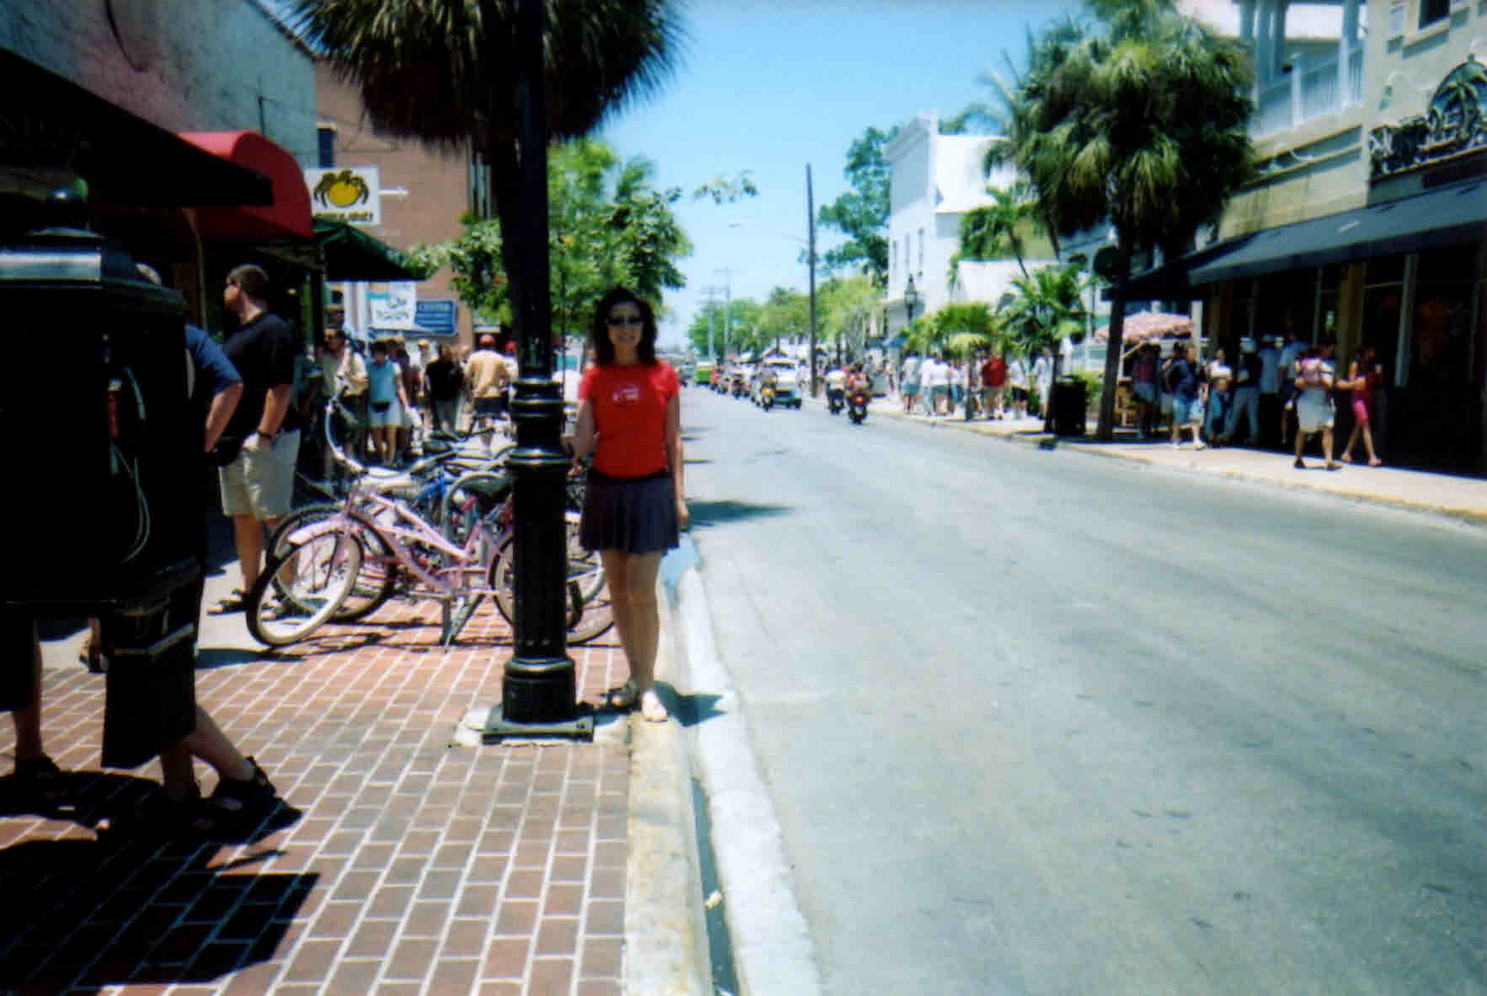 main street in the city of Keywest